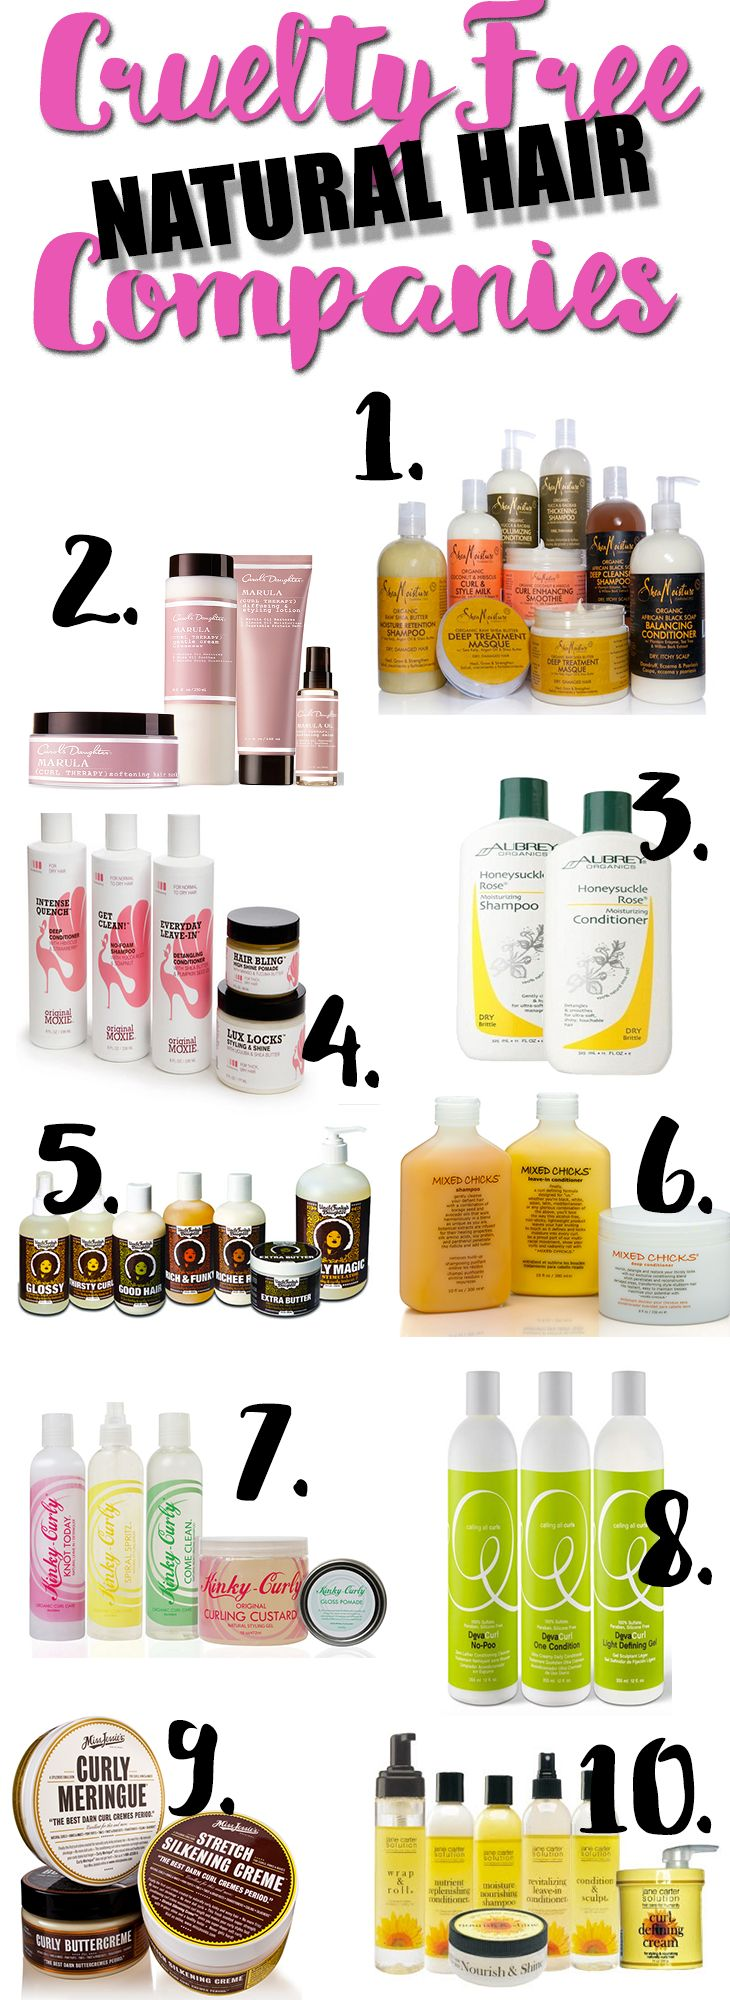 www.beingmelody.com | Ten Cruelty Free Natural Hair Companies You Should Be Trying | http://www.beingmelody.com